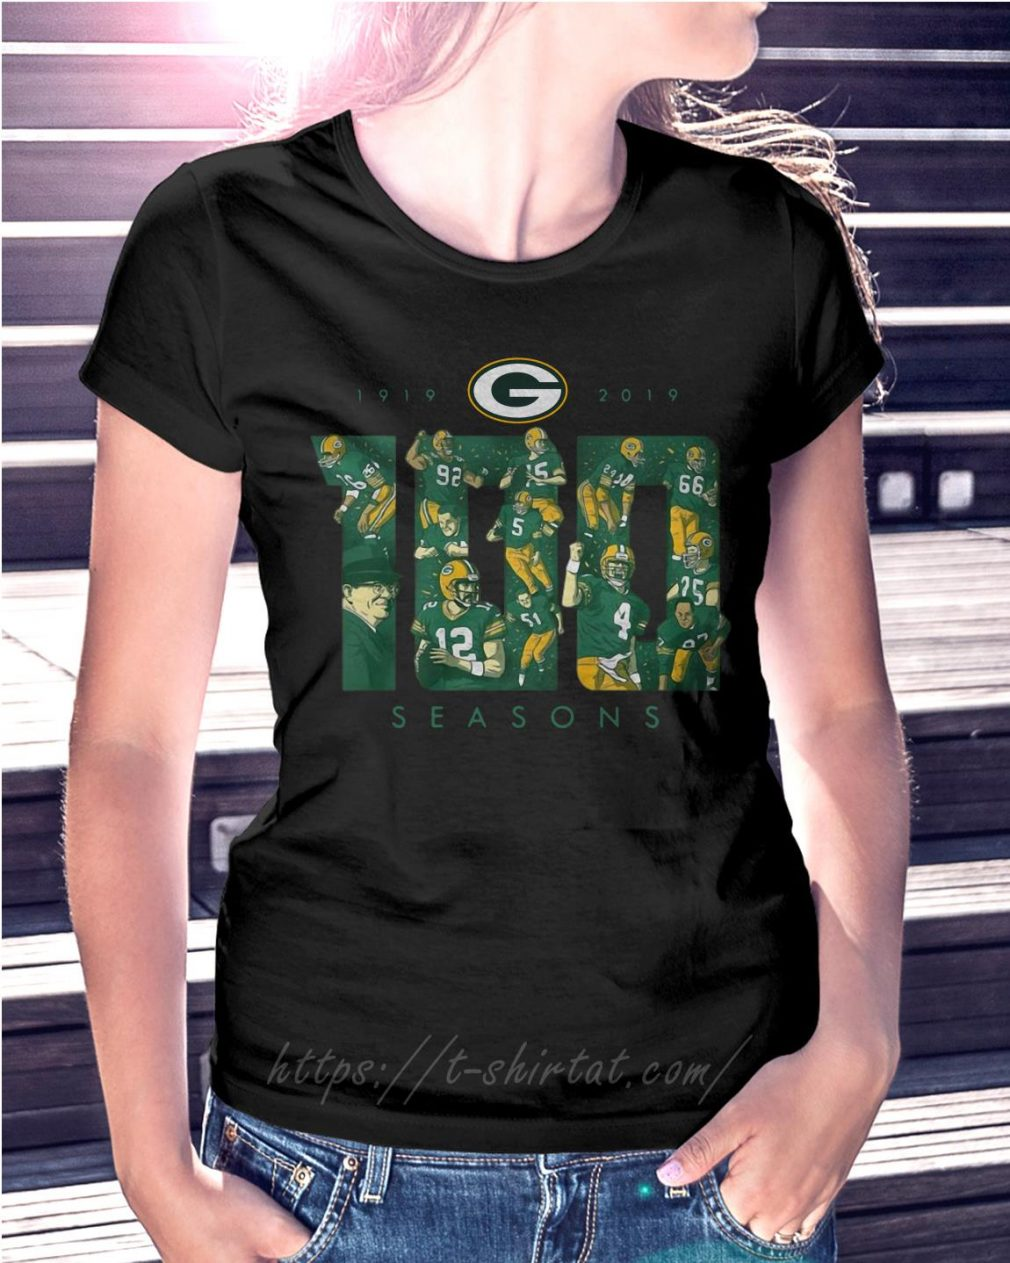 Green Bay Packers 100 seasons 1919-2019